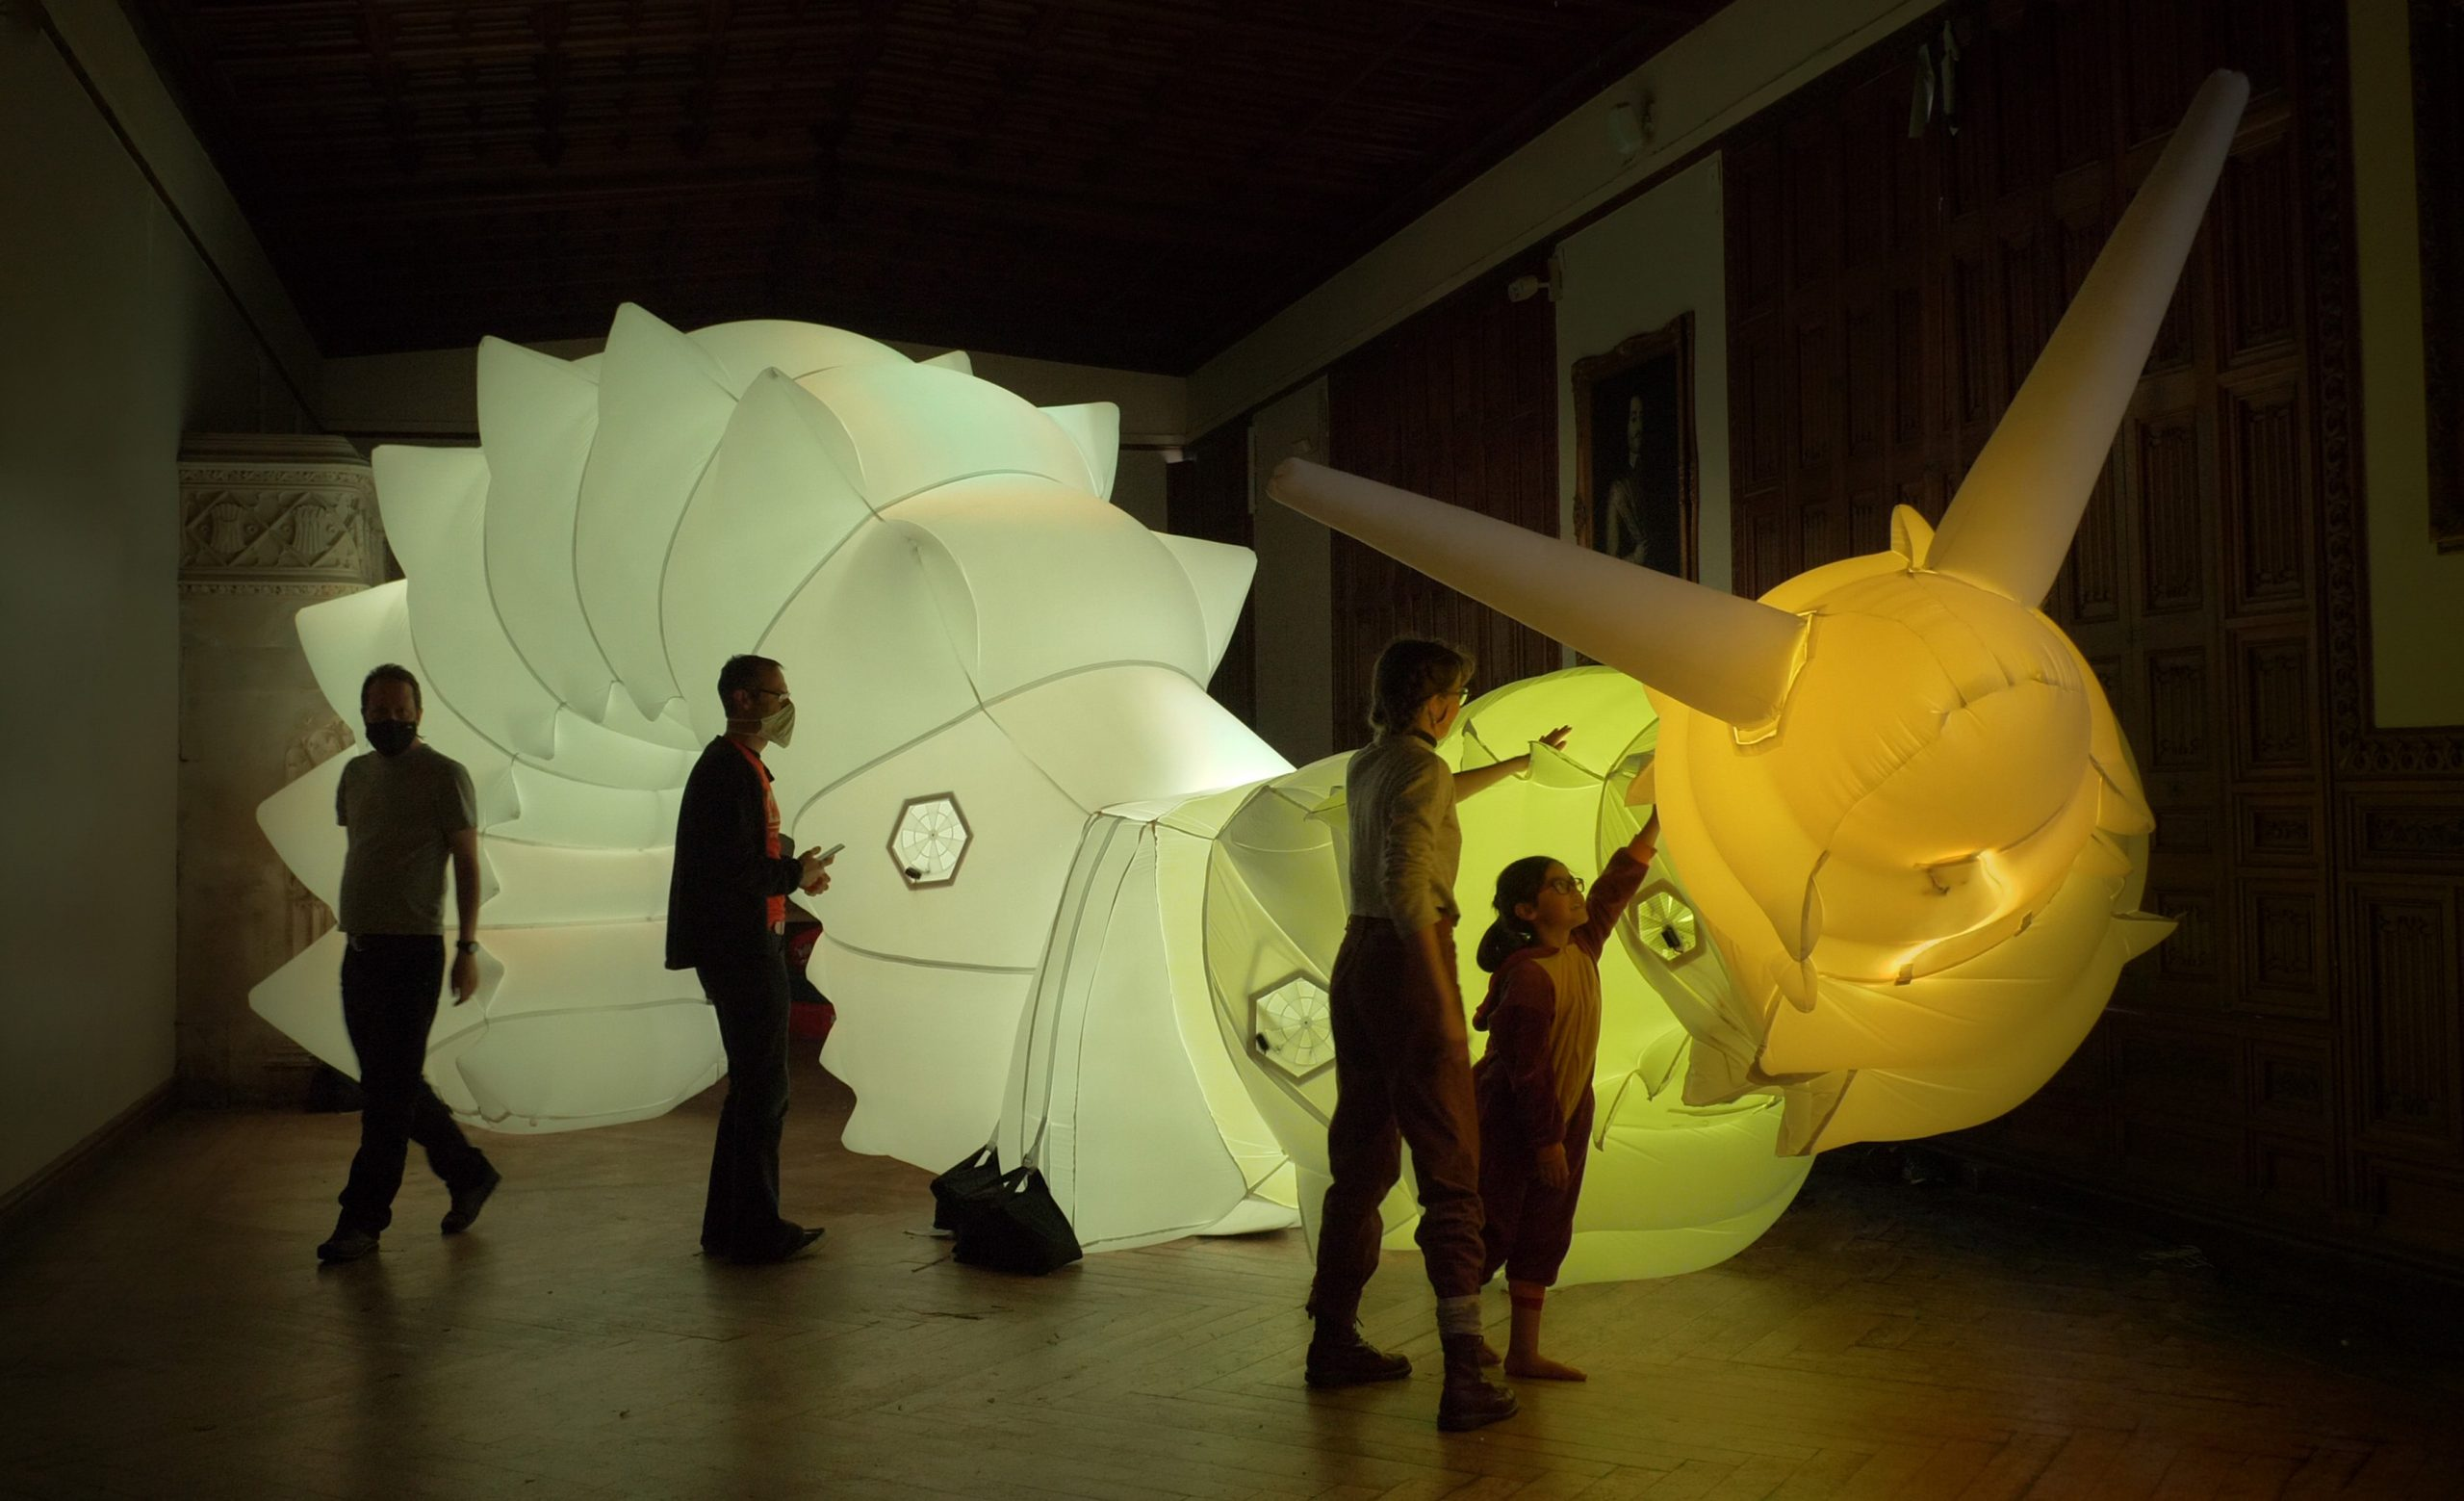 A large inflatable snail, lit from within with a young child reaching up to touch it.